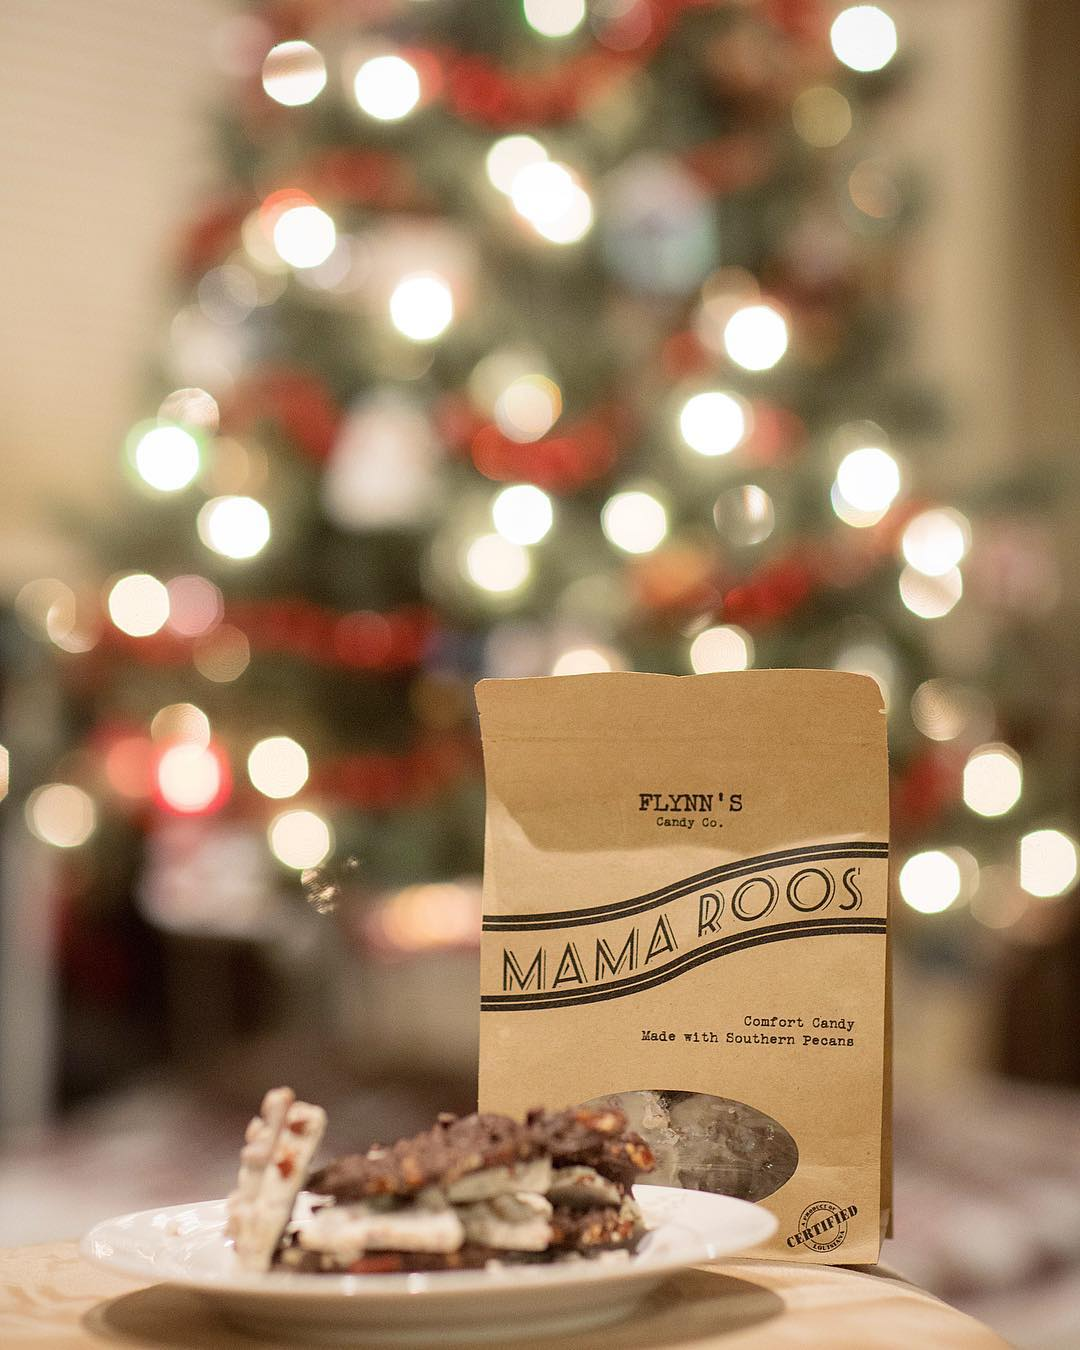 Looking for last minute stocking stuffer ideas?! Calandro's has lots of local sweet treats including…